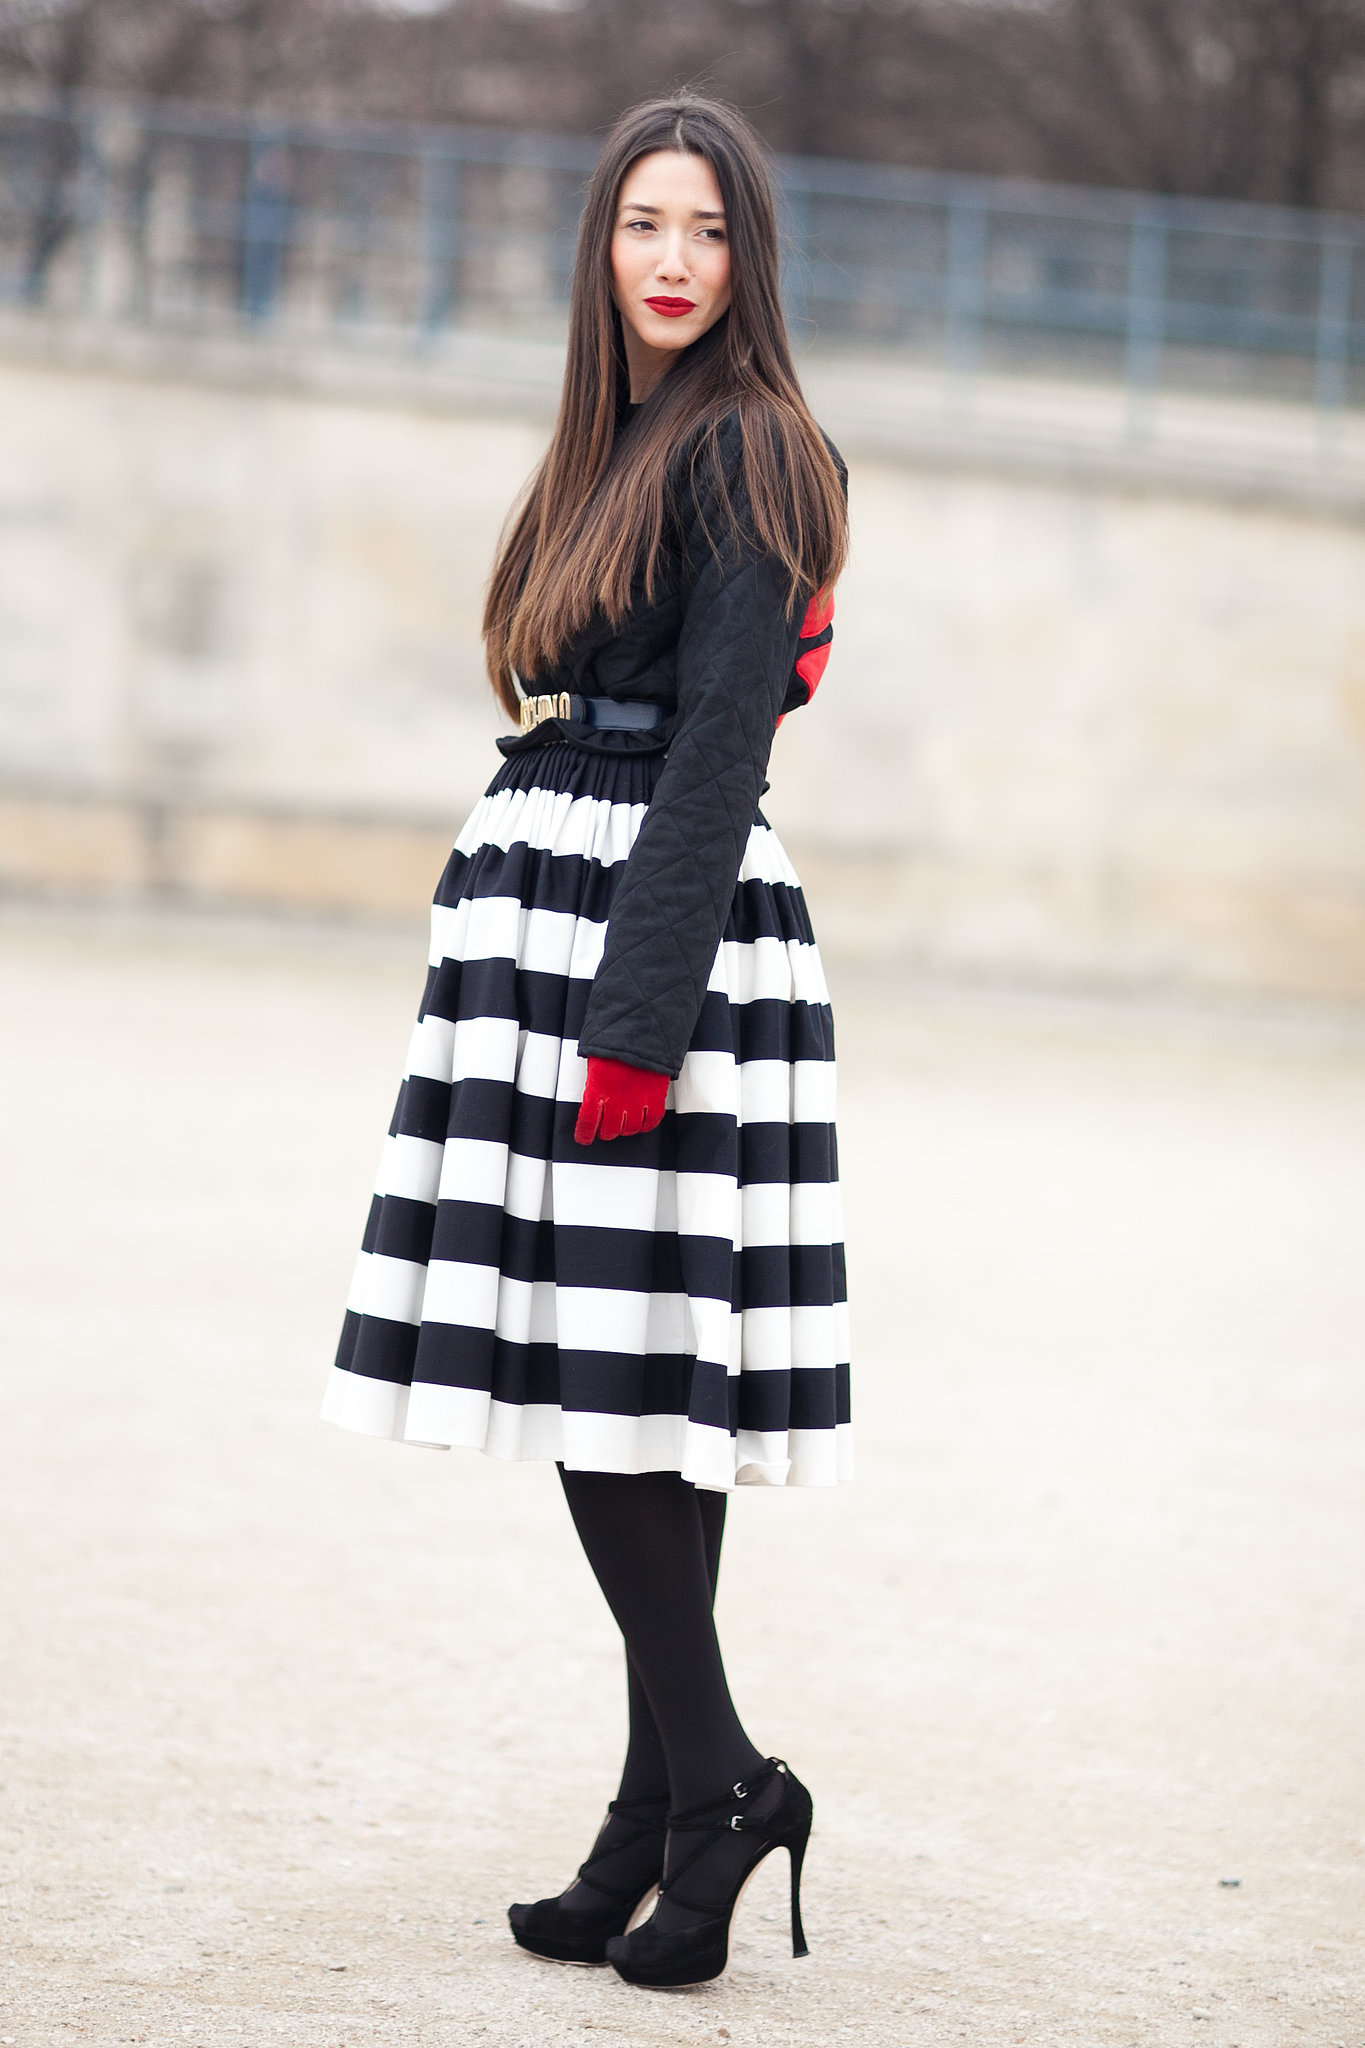 With black, white, and a few bright spots of red, this outfit was all about color palette dedication.